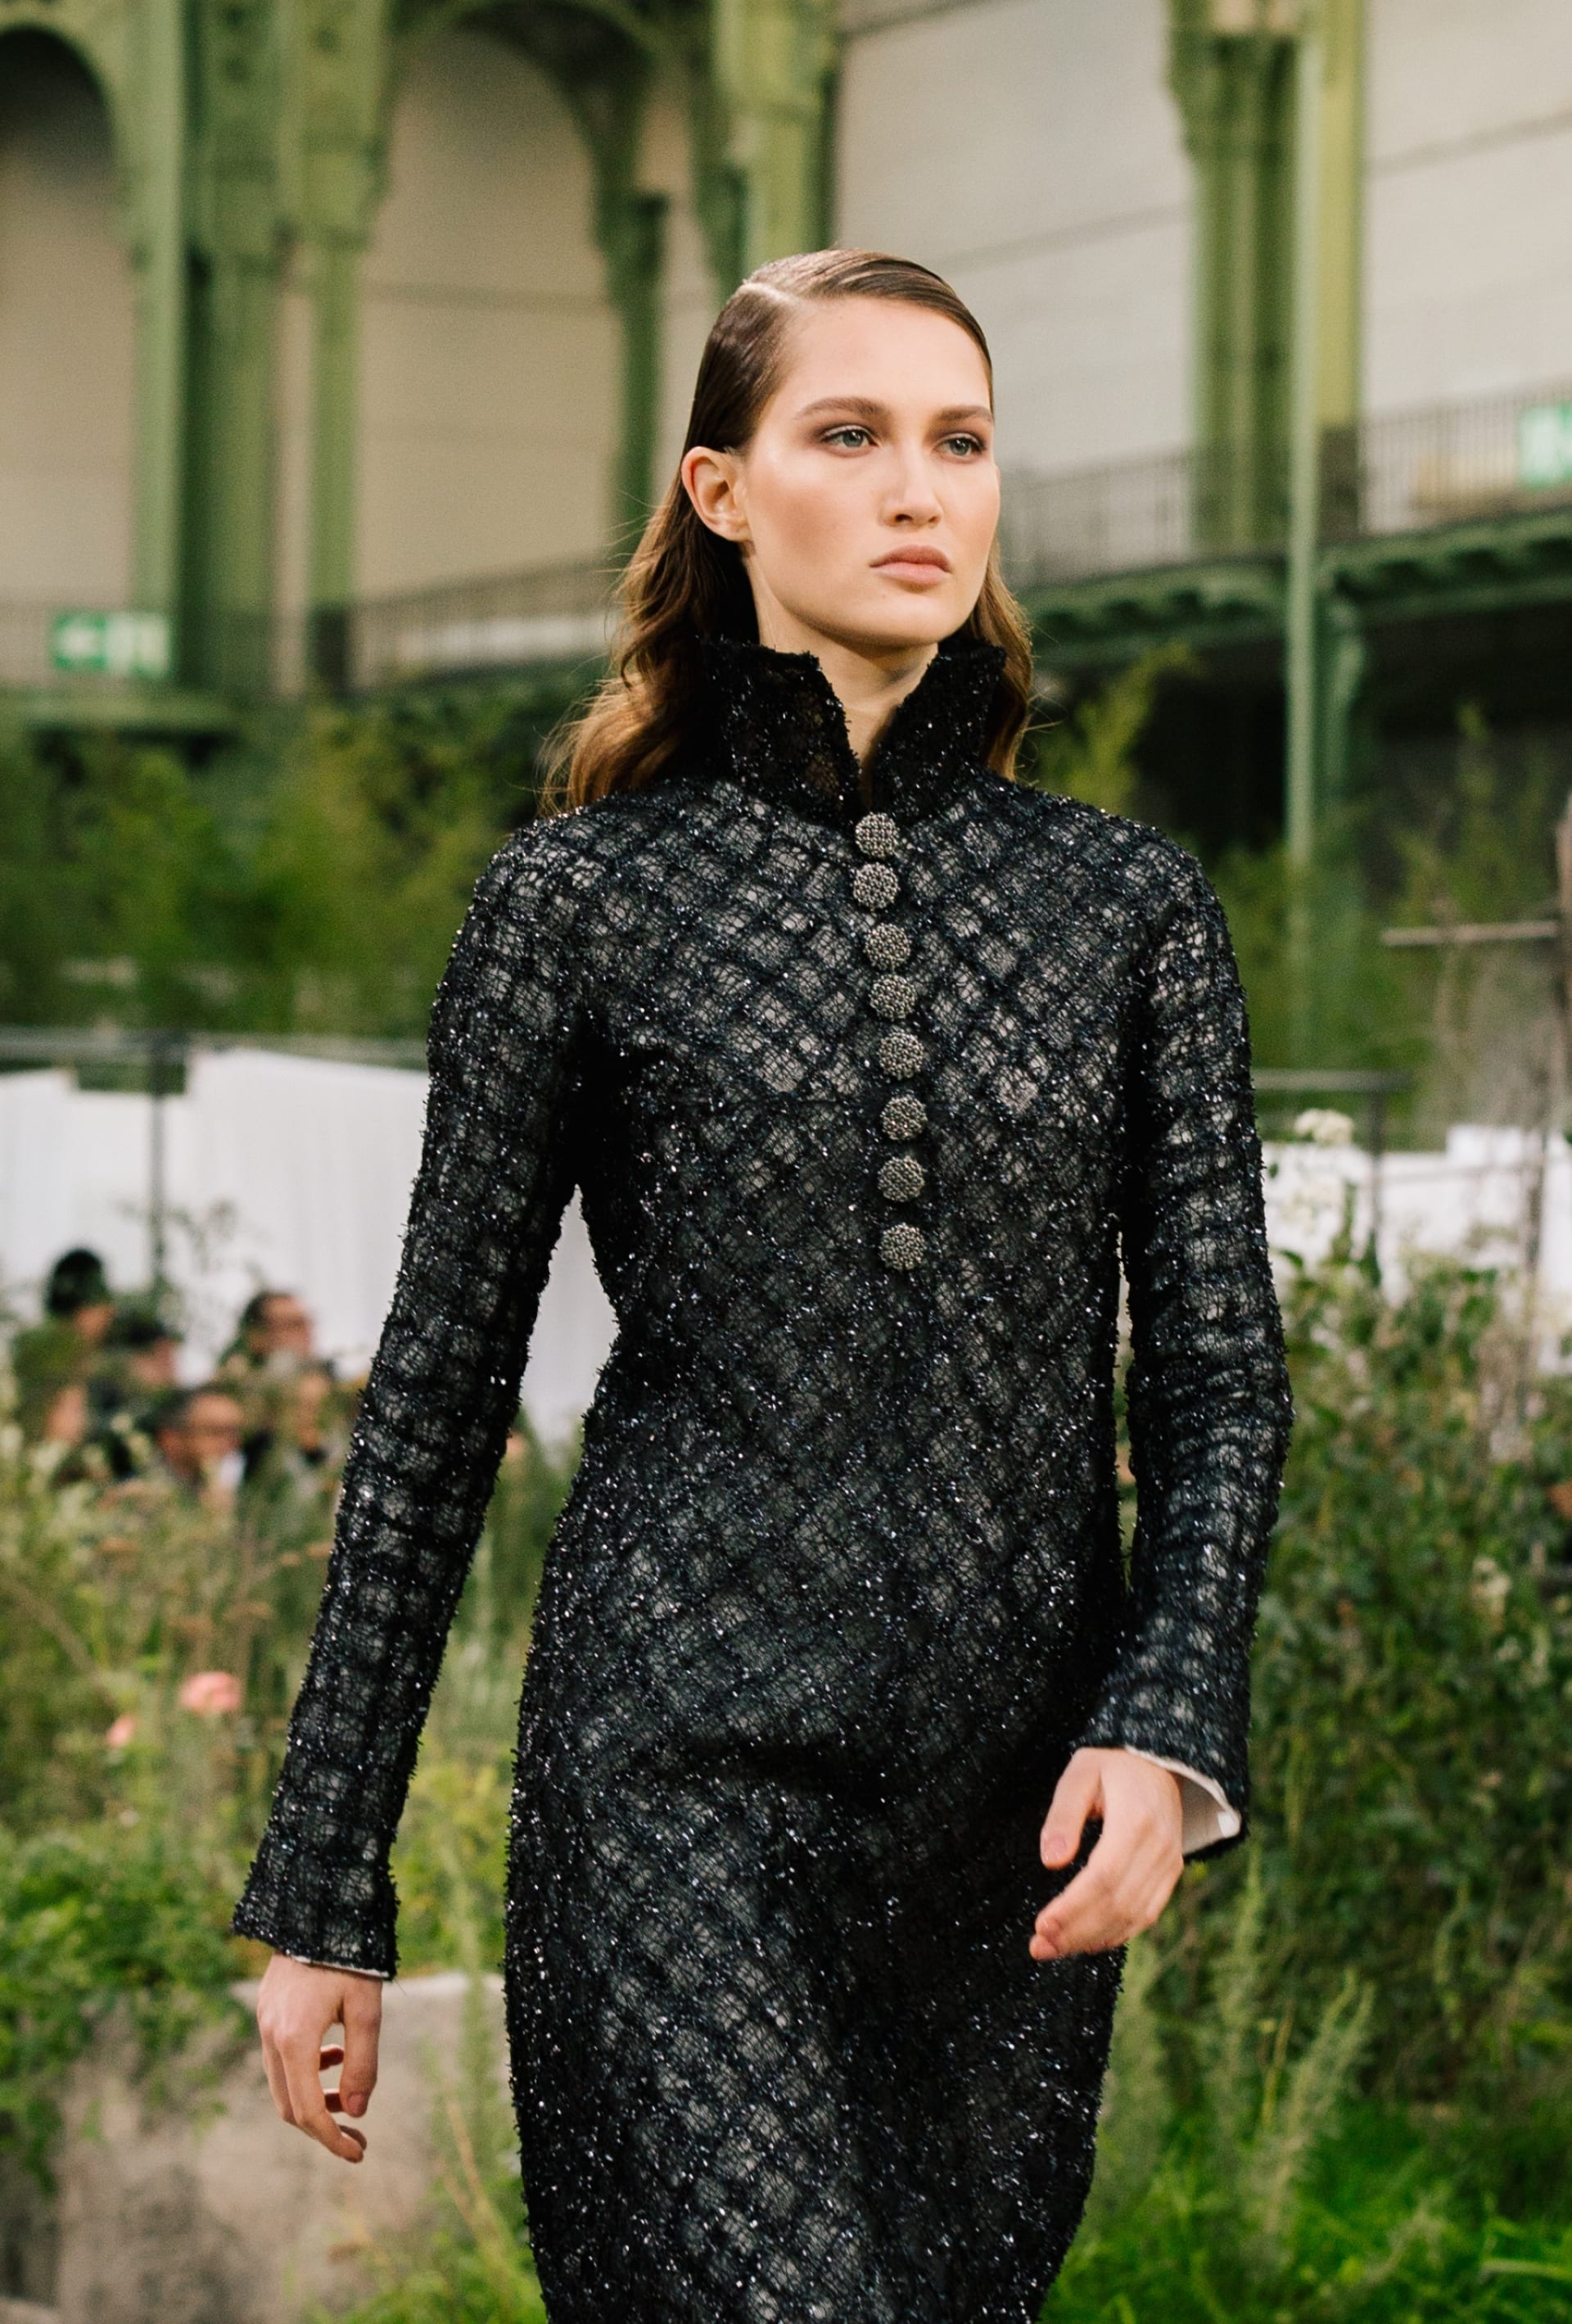 View 3 - Look 16 - Spring-Summer 2020 Haute Couture - see full sized version